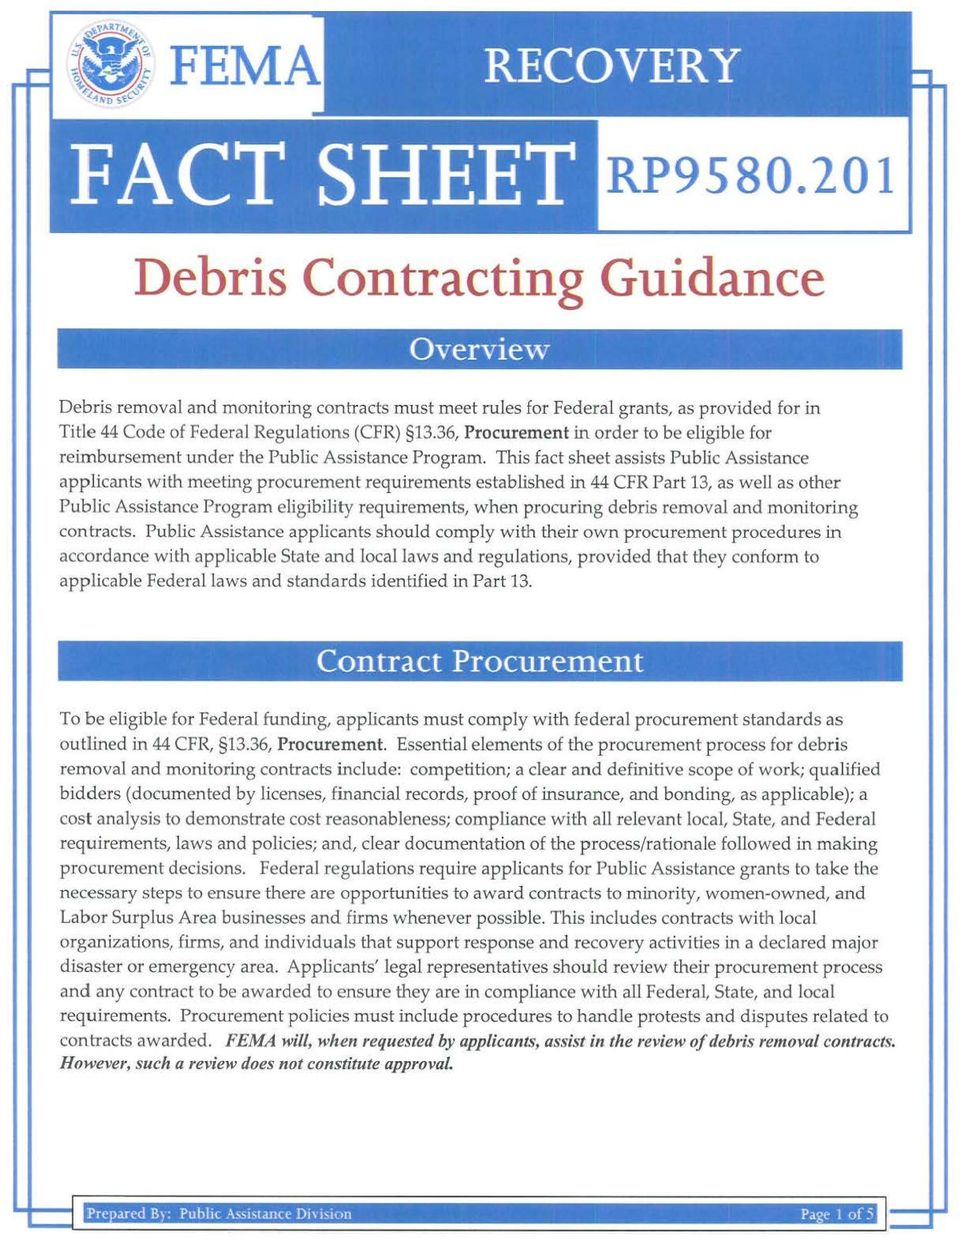 1his fact sheet assists Public Assistance applicants with meeting procurement requirements established in 44 CFR Part 13, as well as other Public Assistance Program eligibility requirements, when